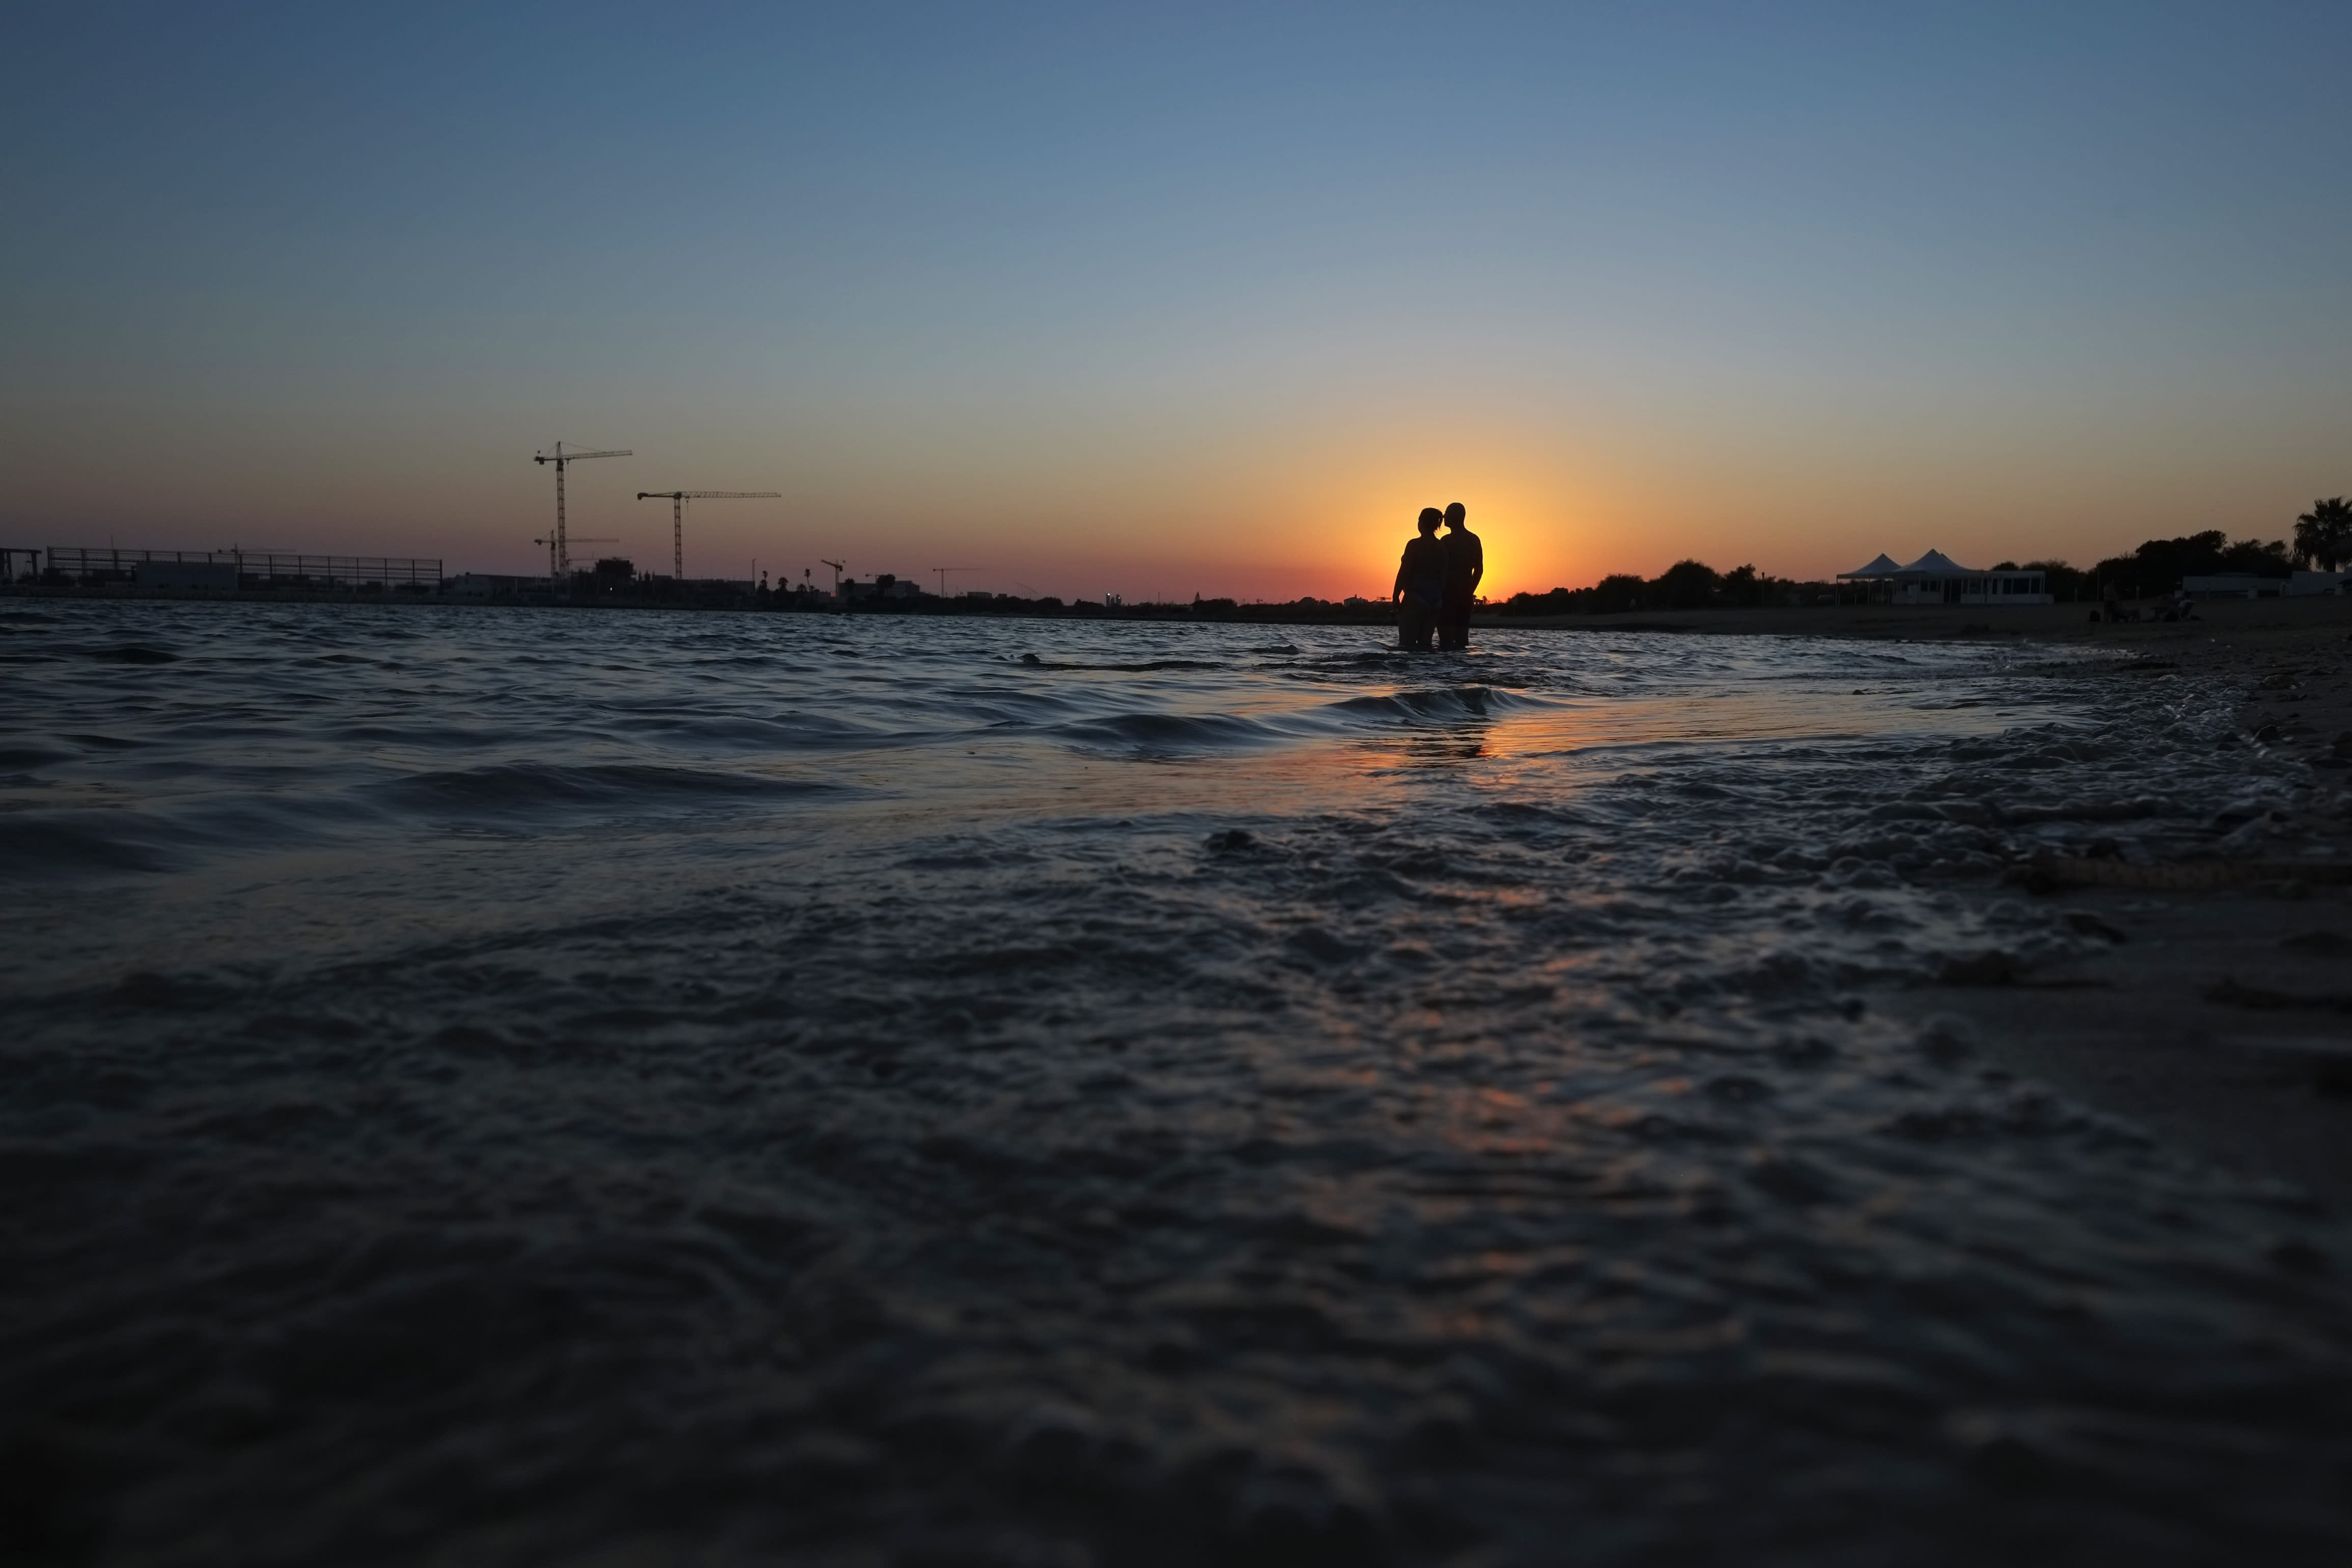 A couple stand in the sea during sunset in coastal resort of Ayia Napa in the eastern Mediterranean island of Cyprus, Saturday, Aug. 22, 2020. Meanwhile, Health Minister Constantinos Ioannou has extended until Jan. 15, 2021, a ban on outdoor festivals, concerts and exhibitions in places without seating where social distancing rules can't be enforced. (AP Photo/Petros Karadjias)